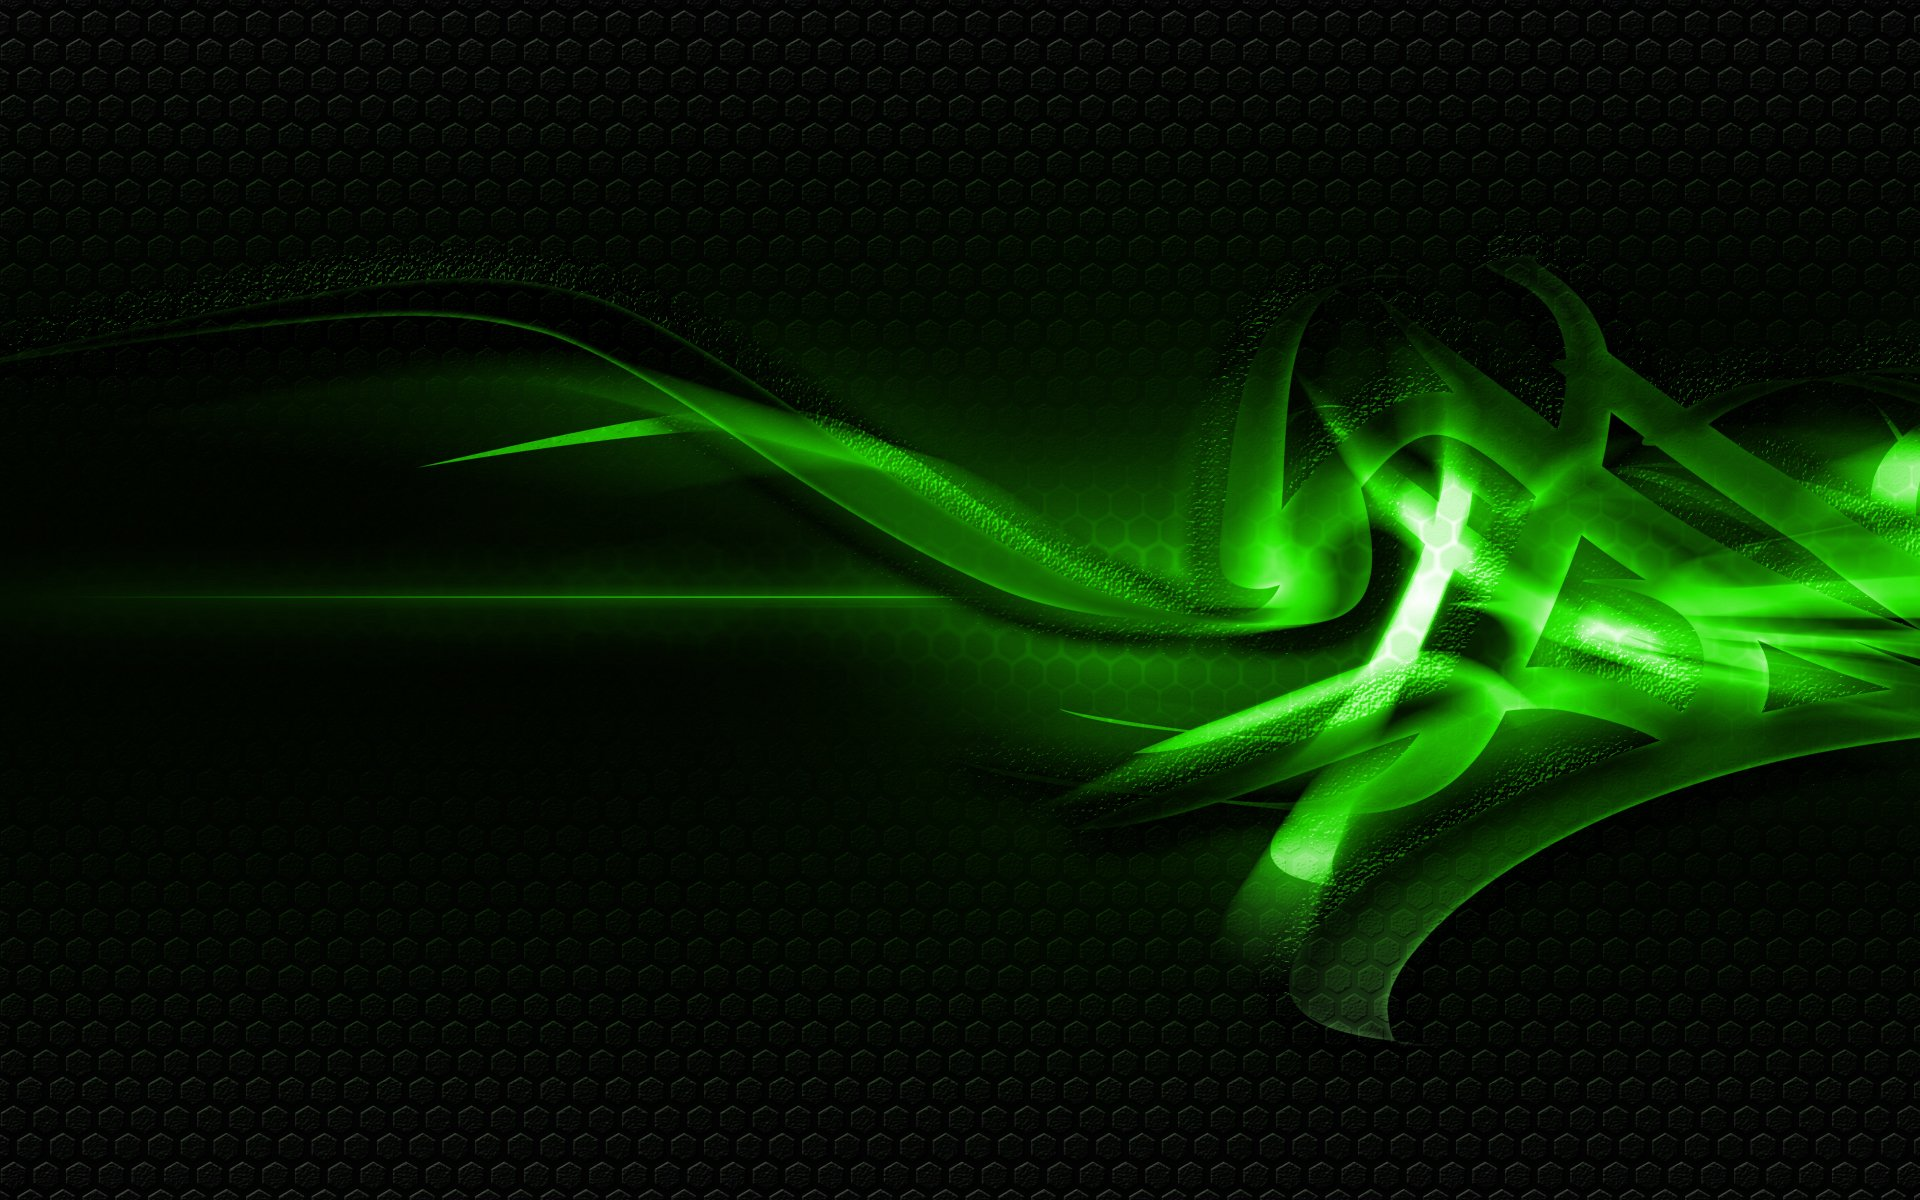 wallpaper cool abstract green colors 1920x1200 1920x1200